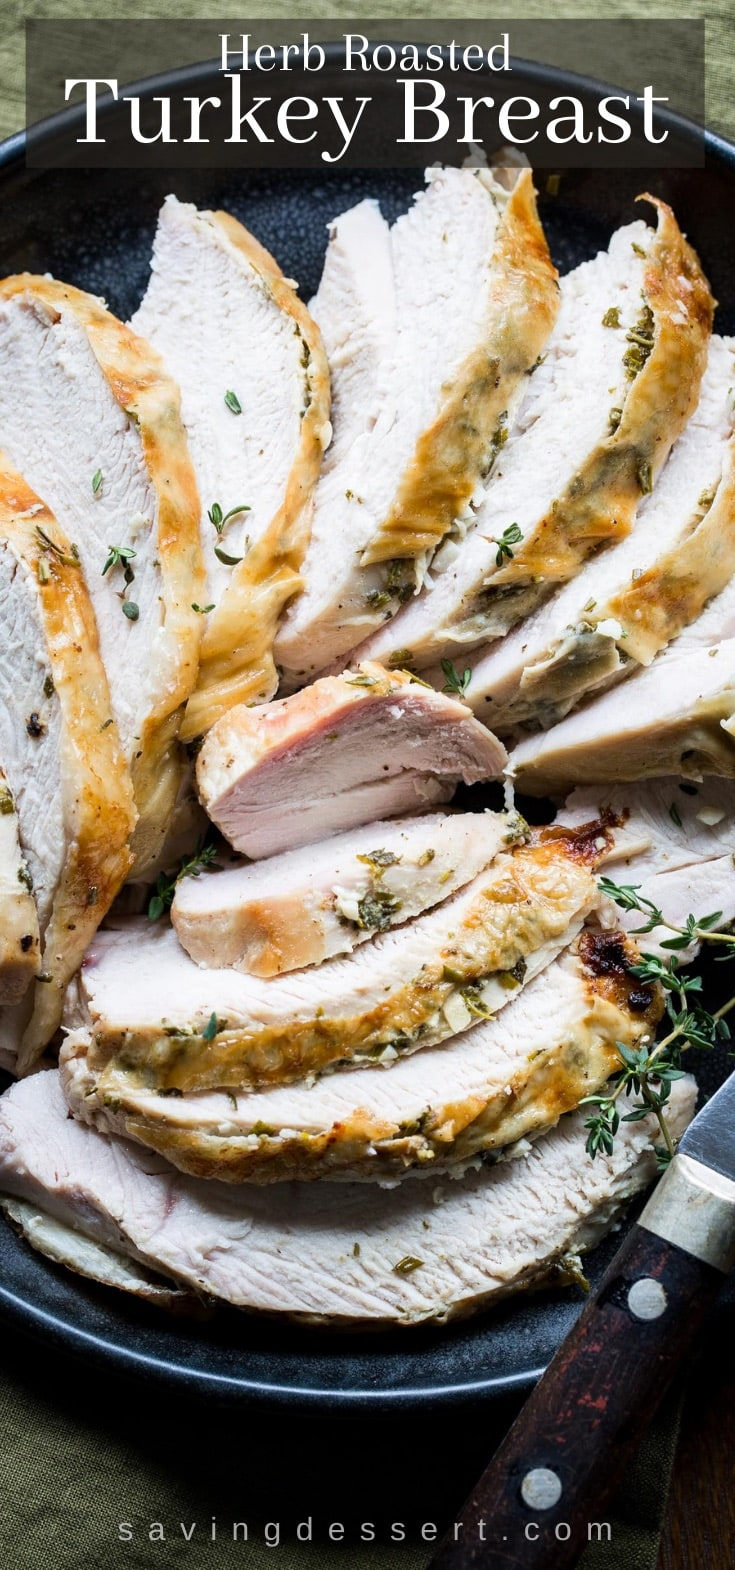 A platter of sliced turkey breast with fresh herbs